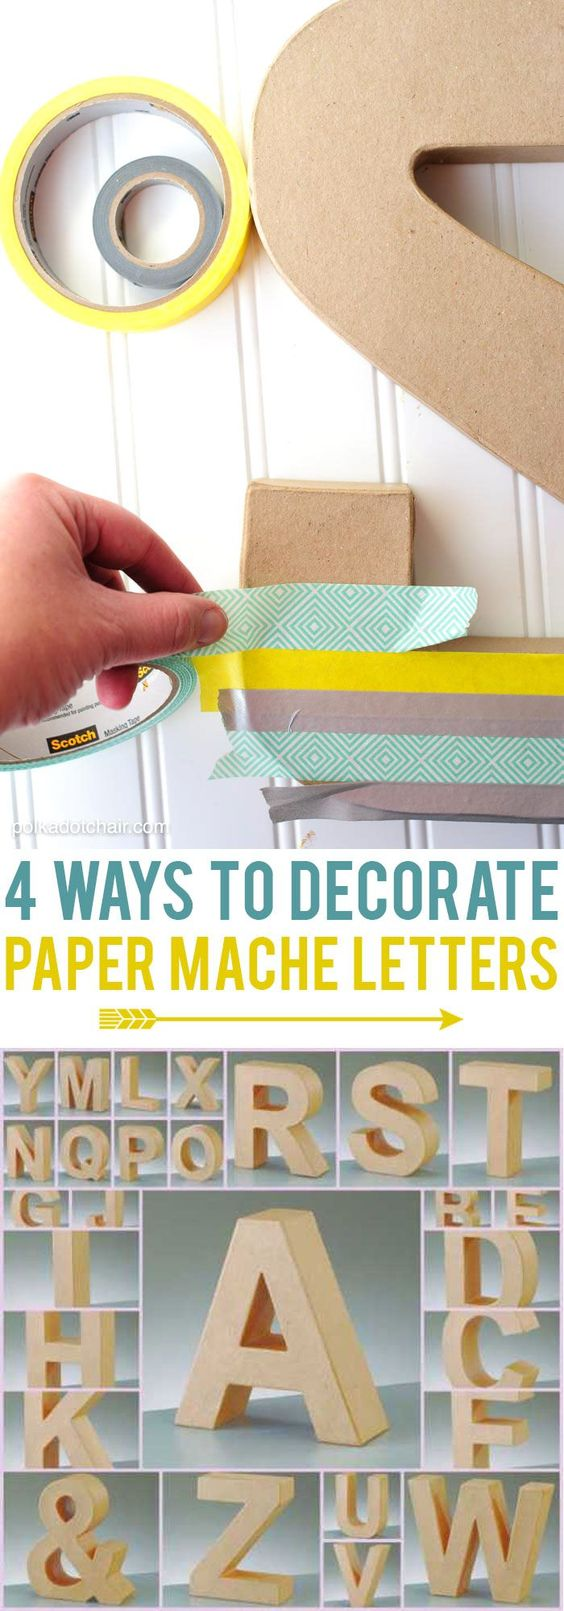 4 different ways to decorate paper mache letters [ad]